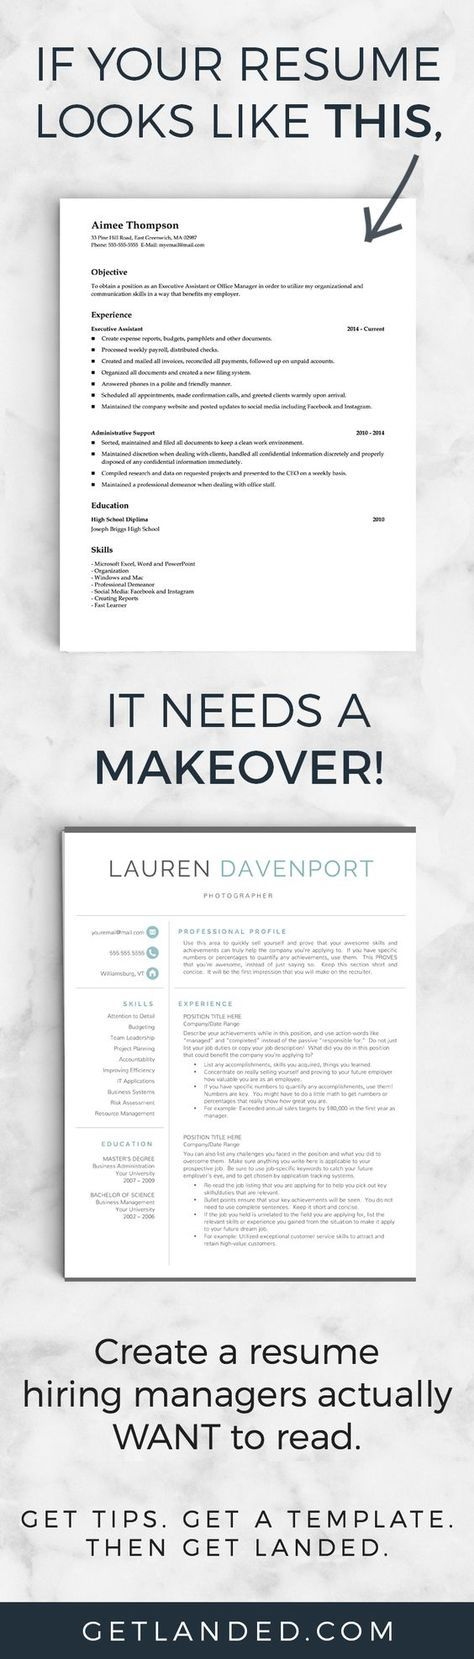 80 of candidates desperately need a resume makeover! Get a resume - i need to make a resume